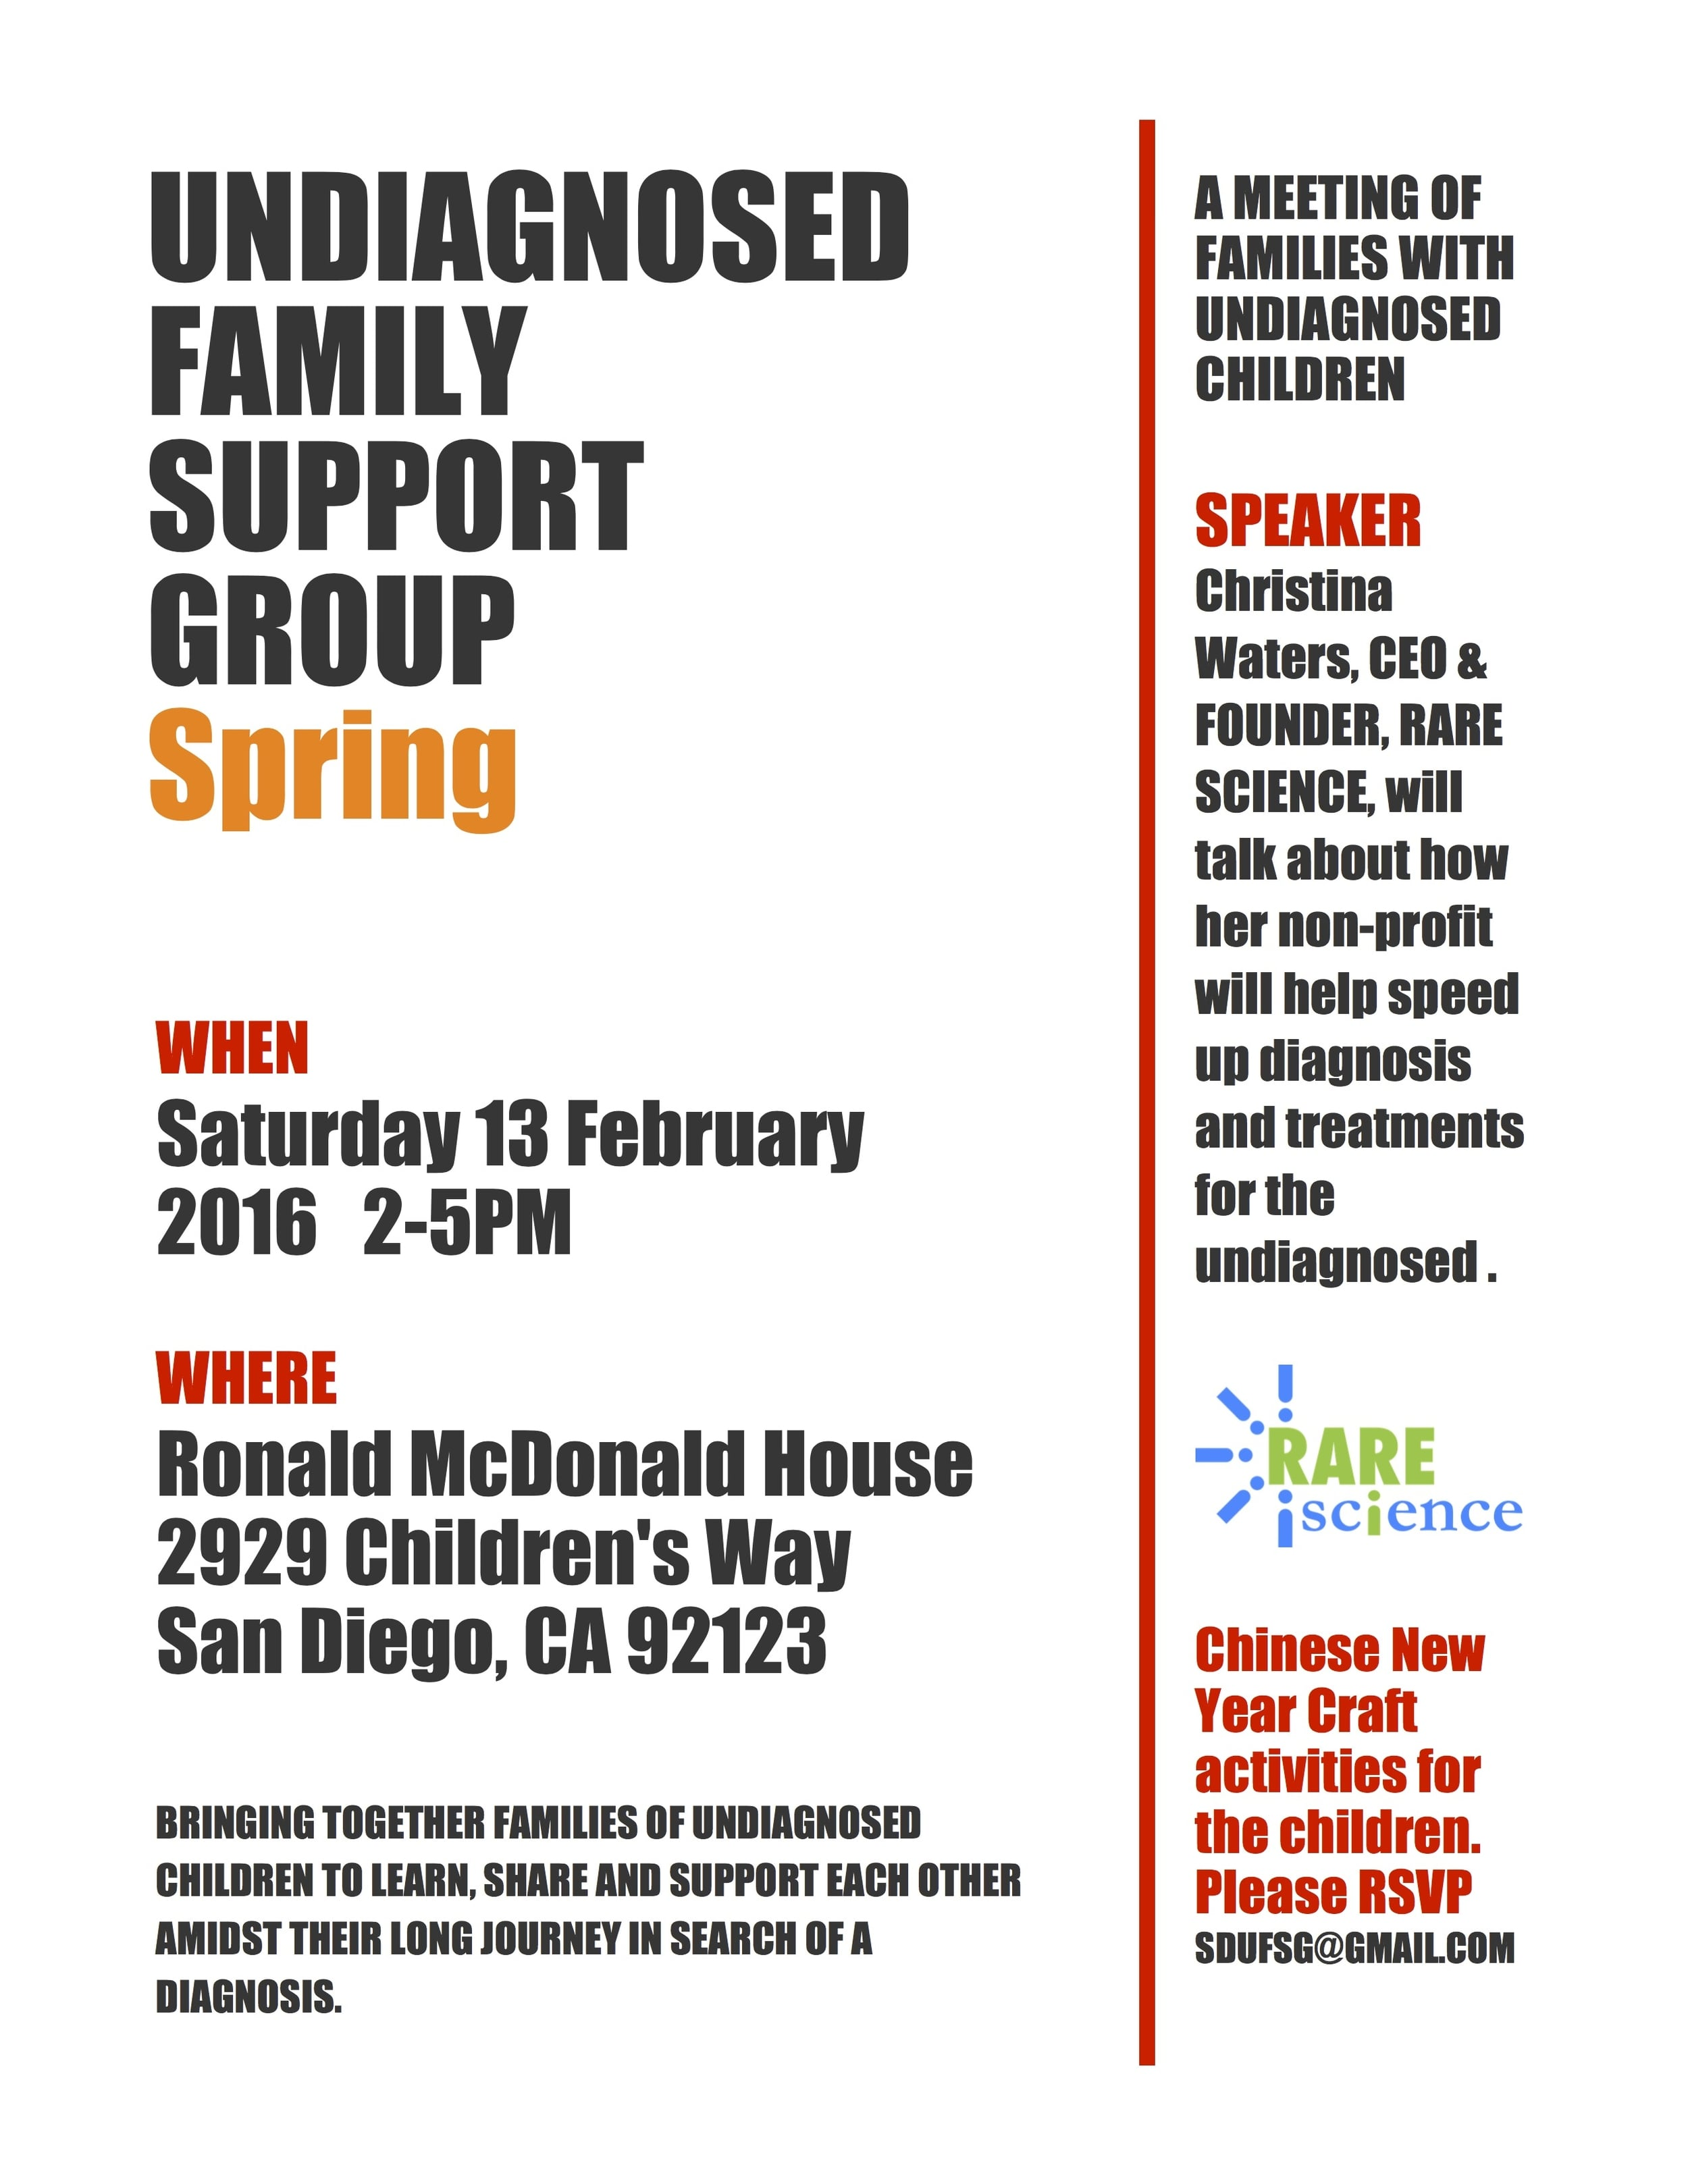 UNDIAGNOSED SUPPORT GROUP MTG Feb 2016 copy.jpg